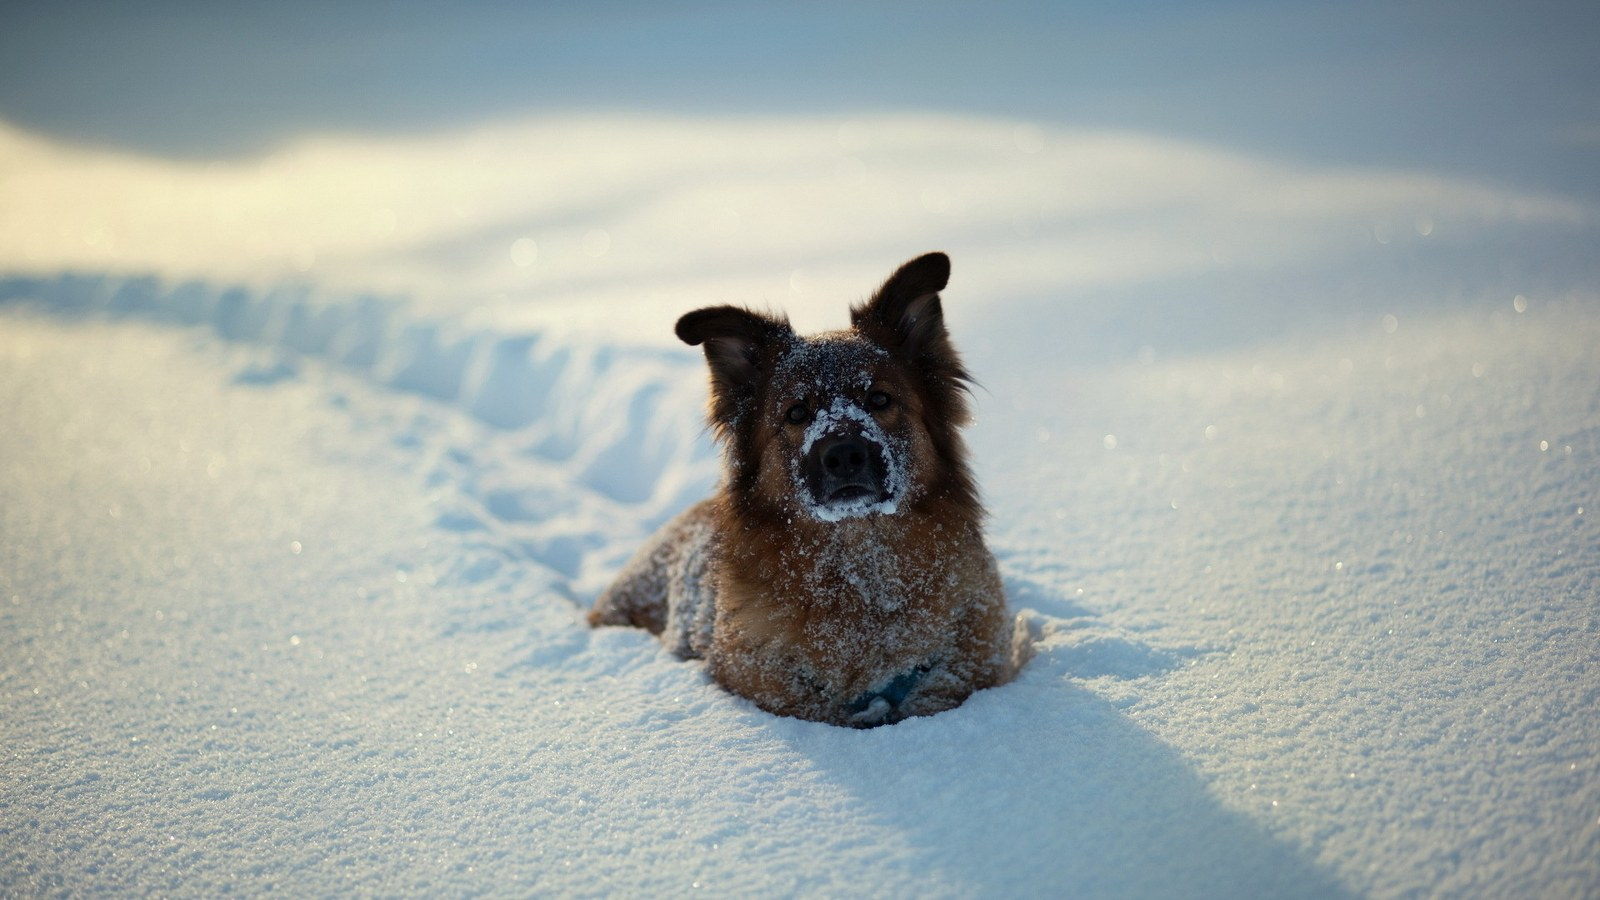 To set this Dog Snow Photography as wallpaper background on your Desktop, SmartPhone, Tablet, Laptop, iphone, ipad click above to open in a new window in ...